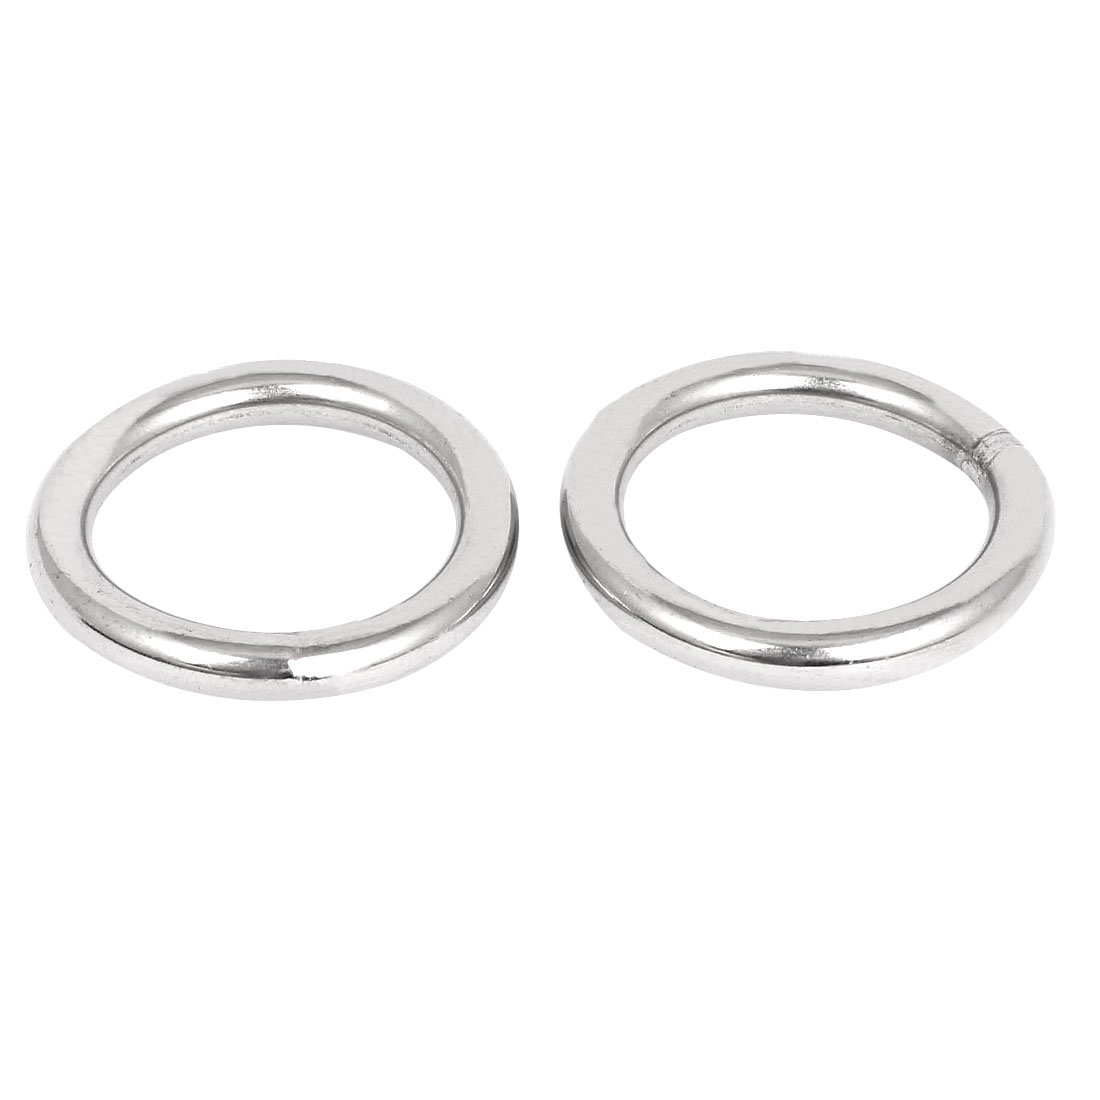 uxcell 60mm x 8mm 304 Stainless Steel Webbing Strapping Welded O Rings 2 Pcs